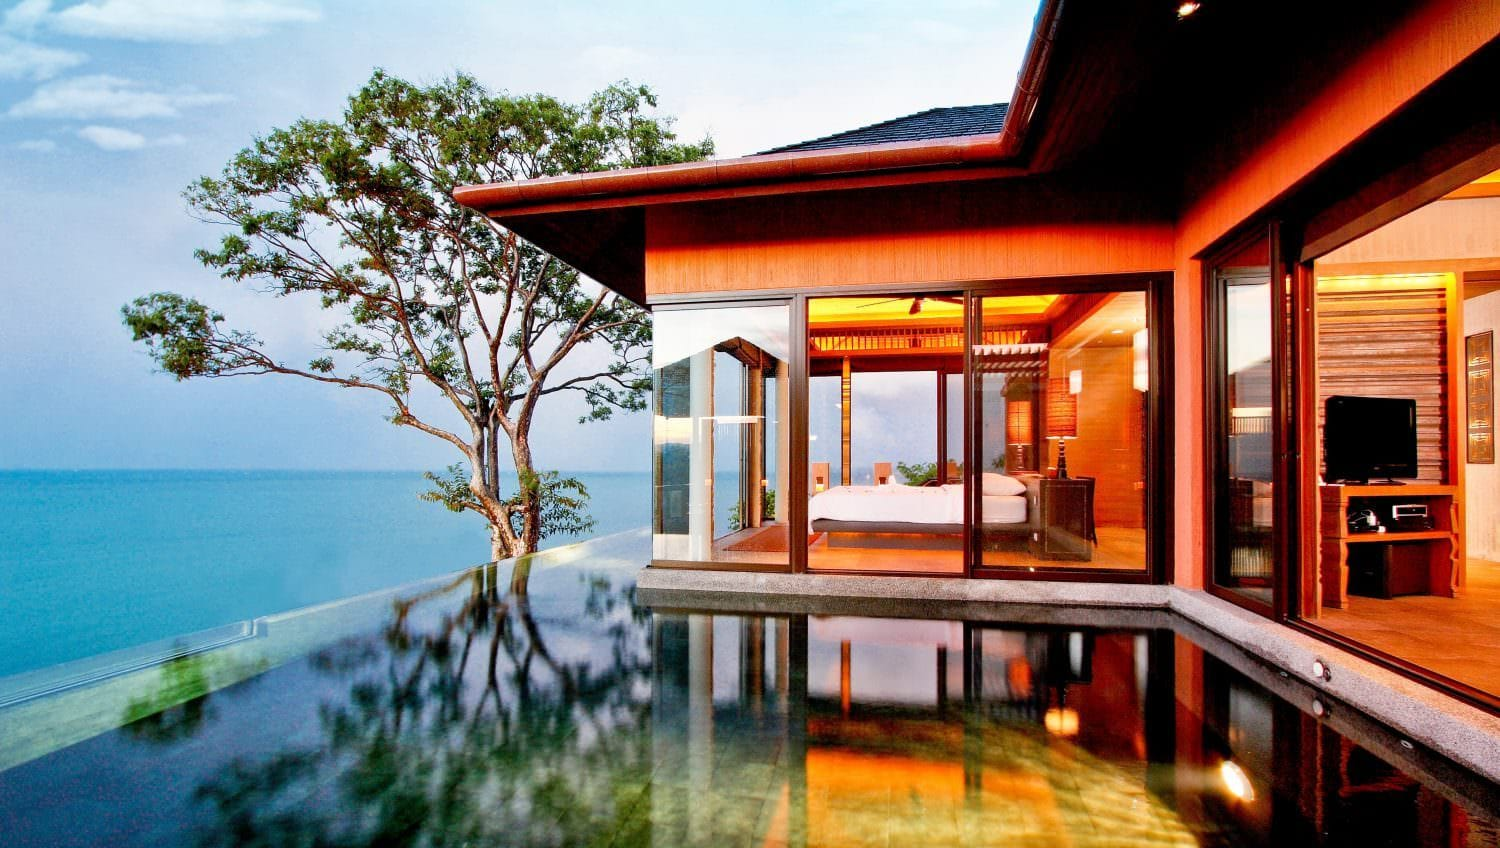 12-Sri-panwa-luxury-pool-villa-resort-spa-Phuket-Thailand